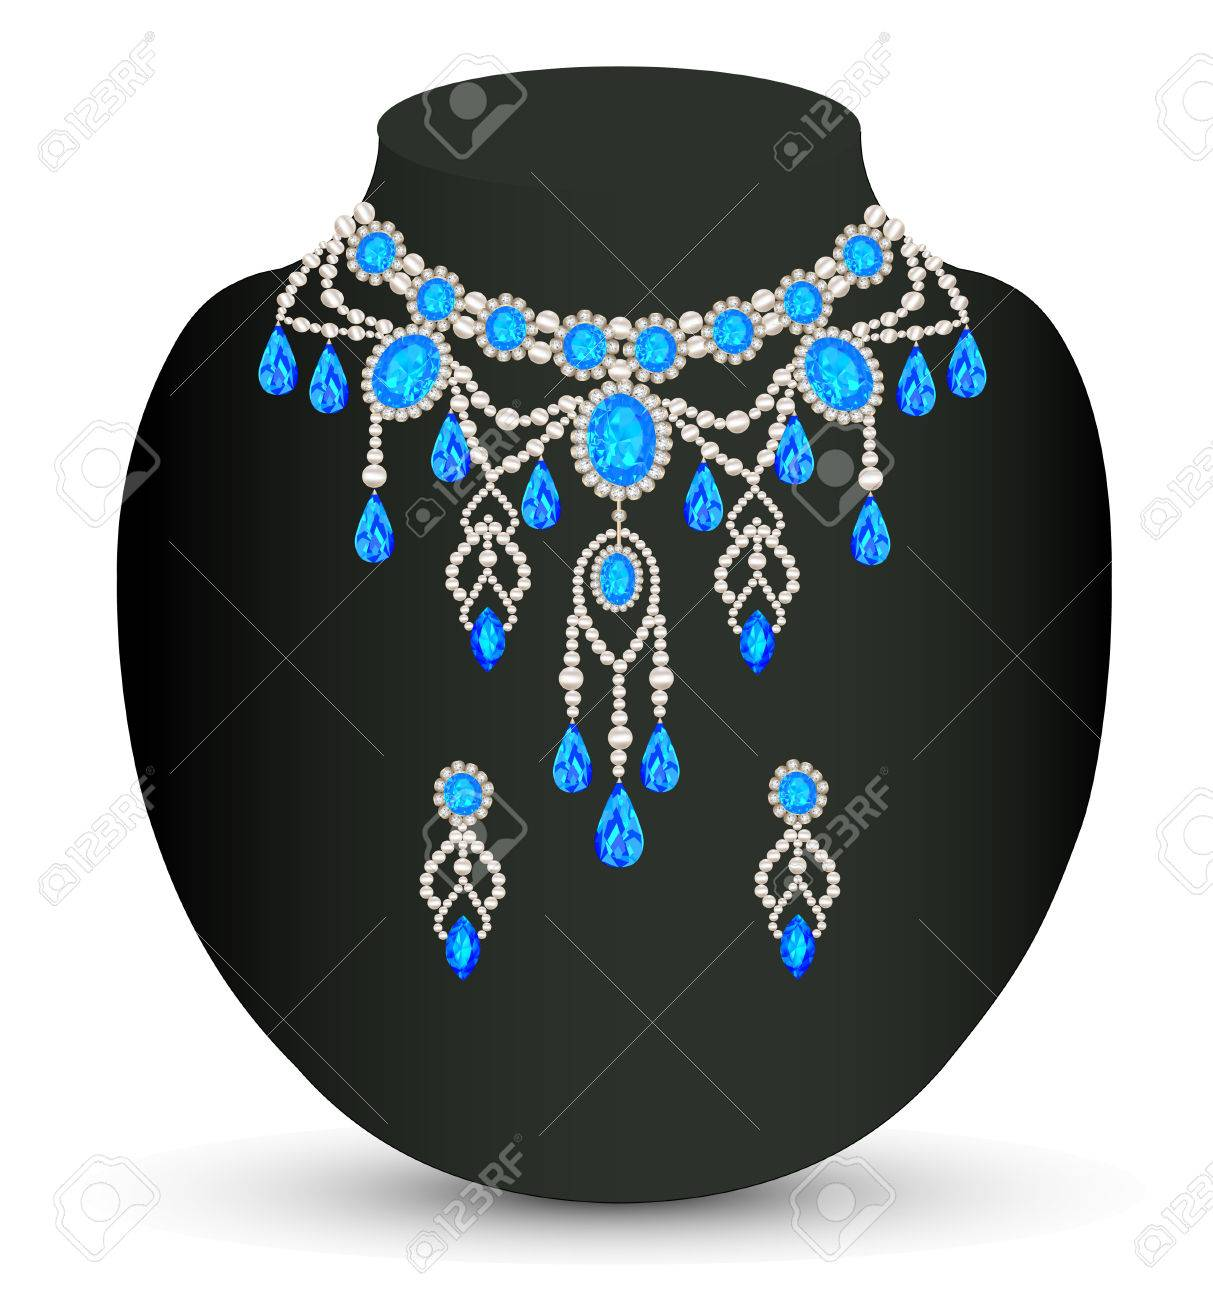 illustration jewelry female necklace and earrings with blue jewels Stock Vector - 23902629